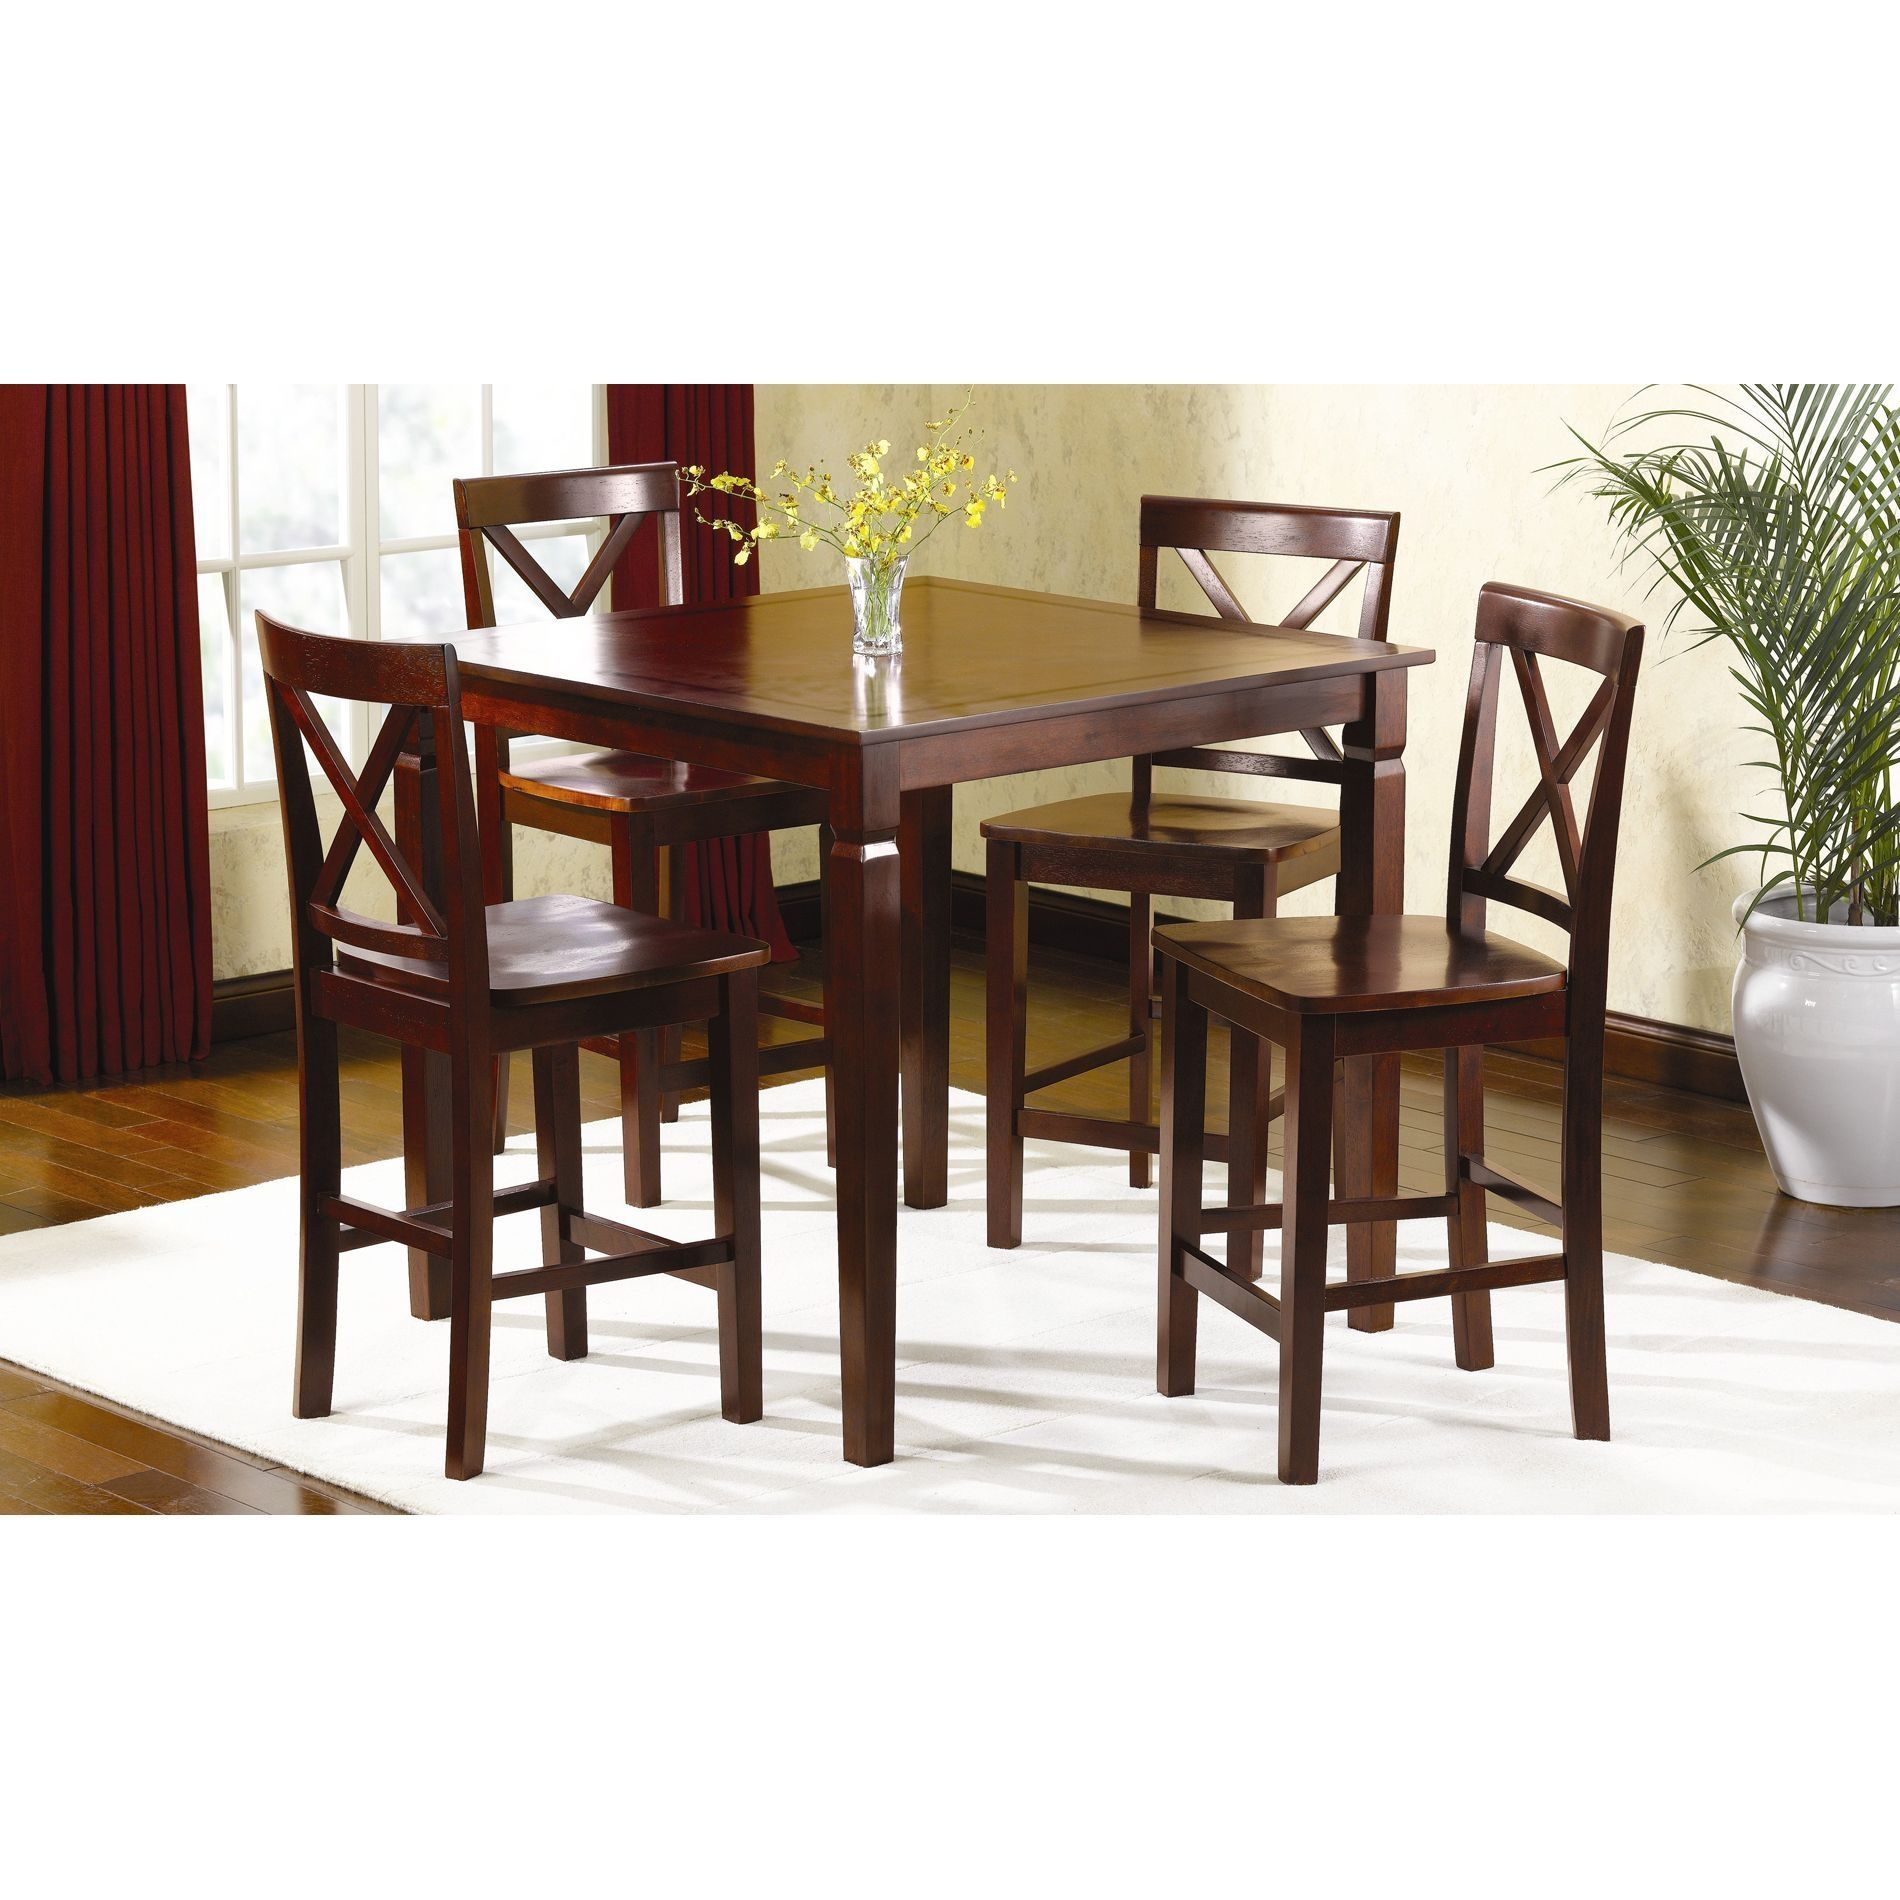 Kmart High Kitchen Table Sets